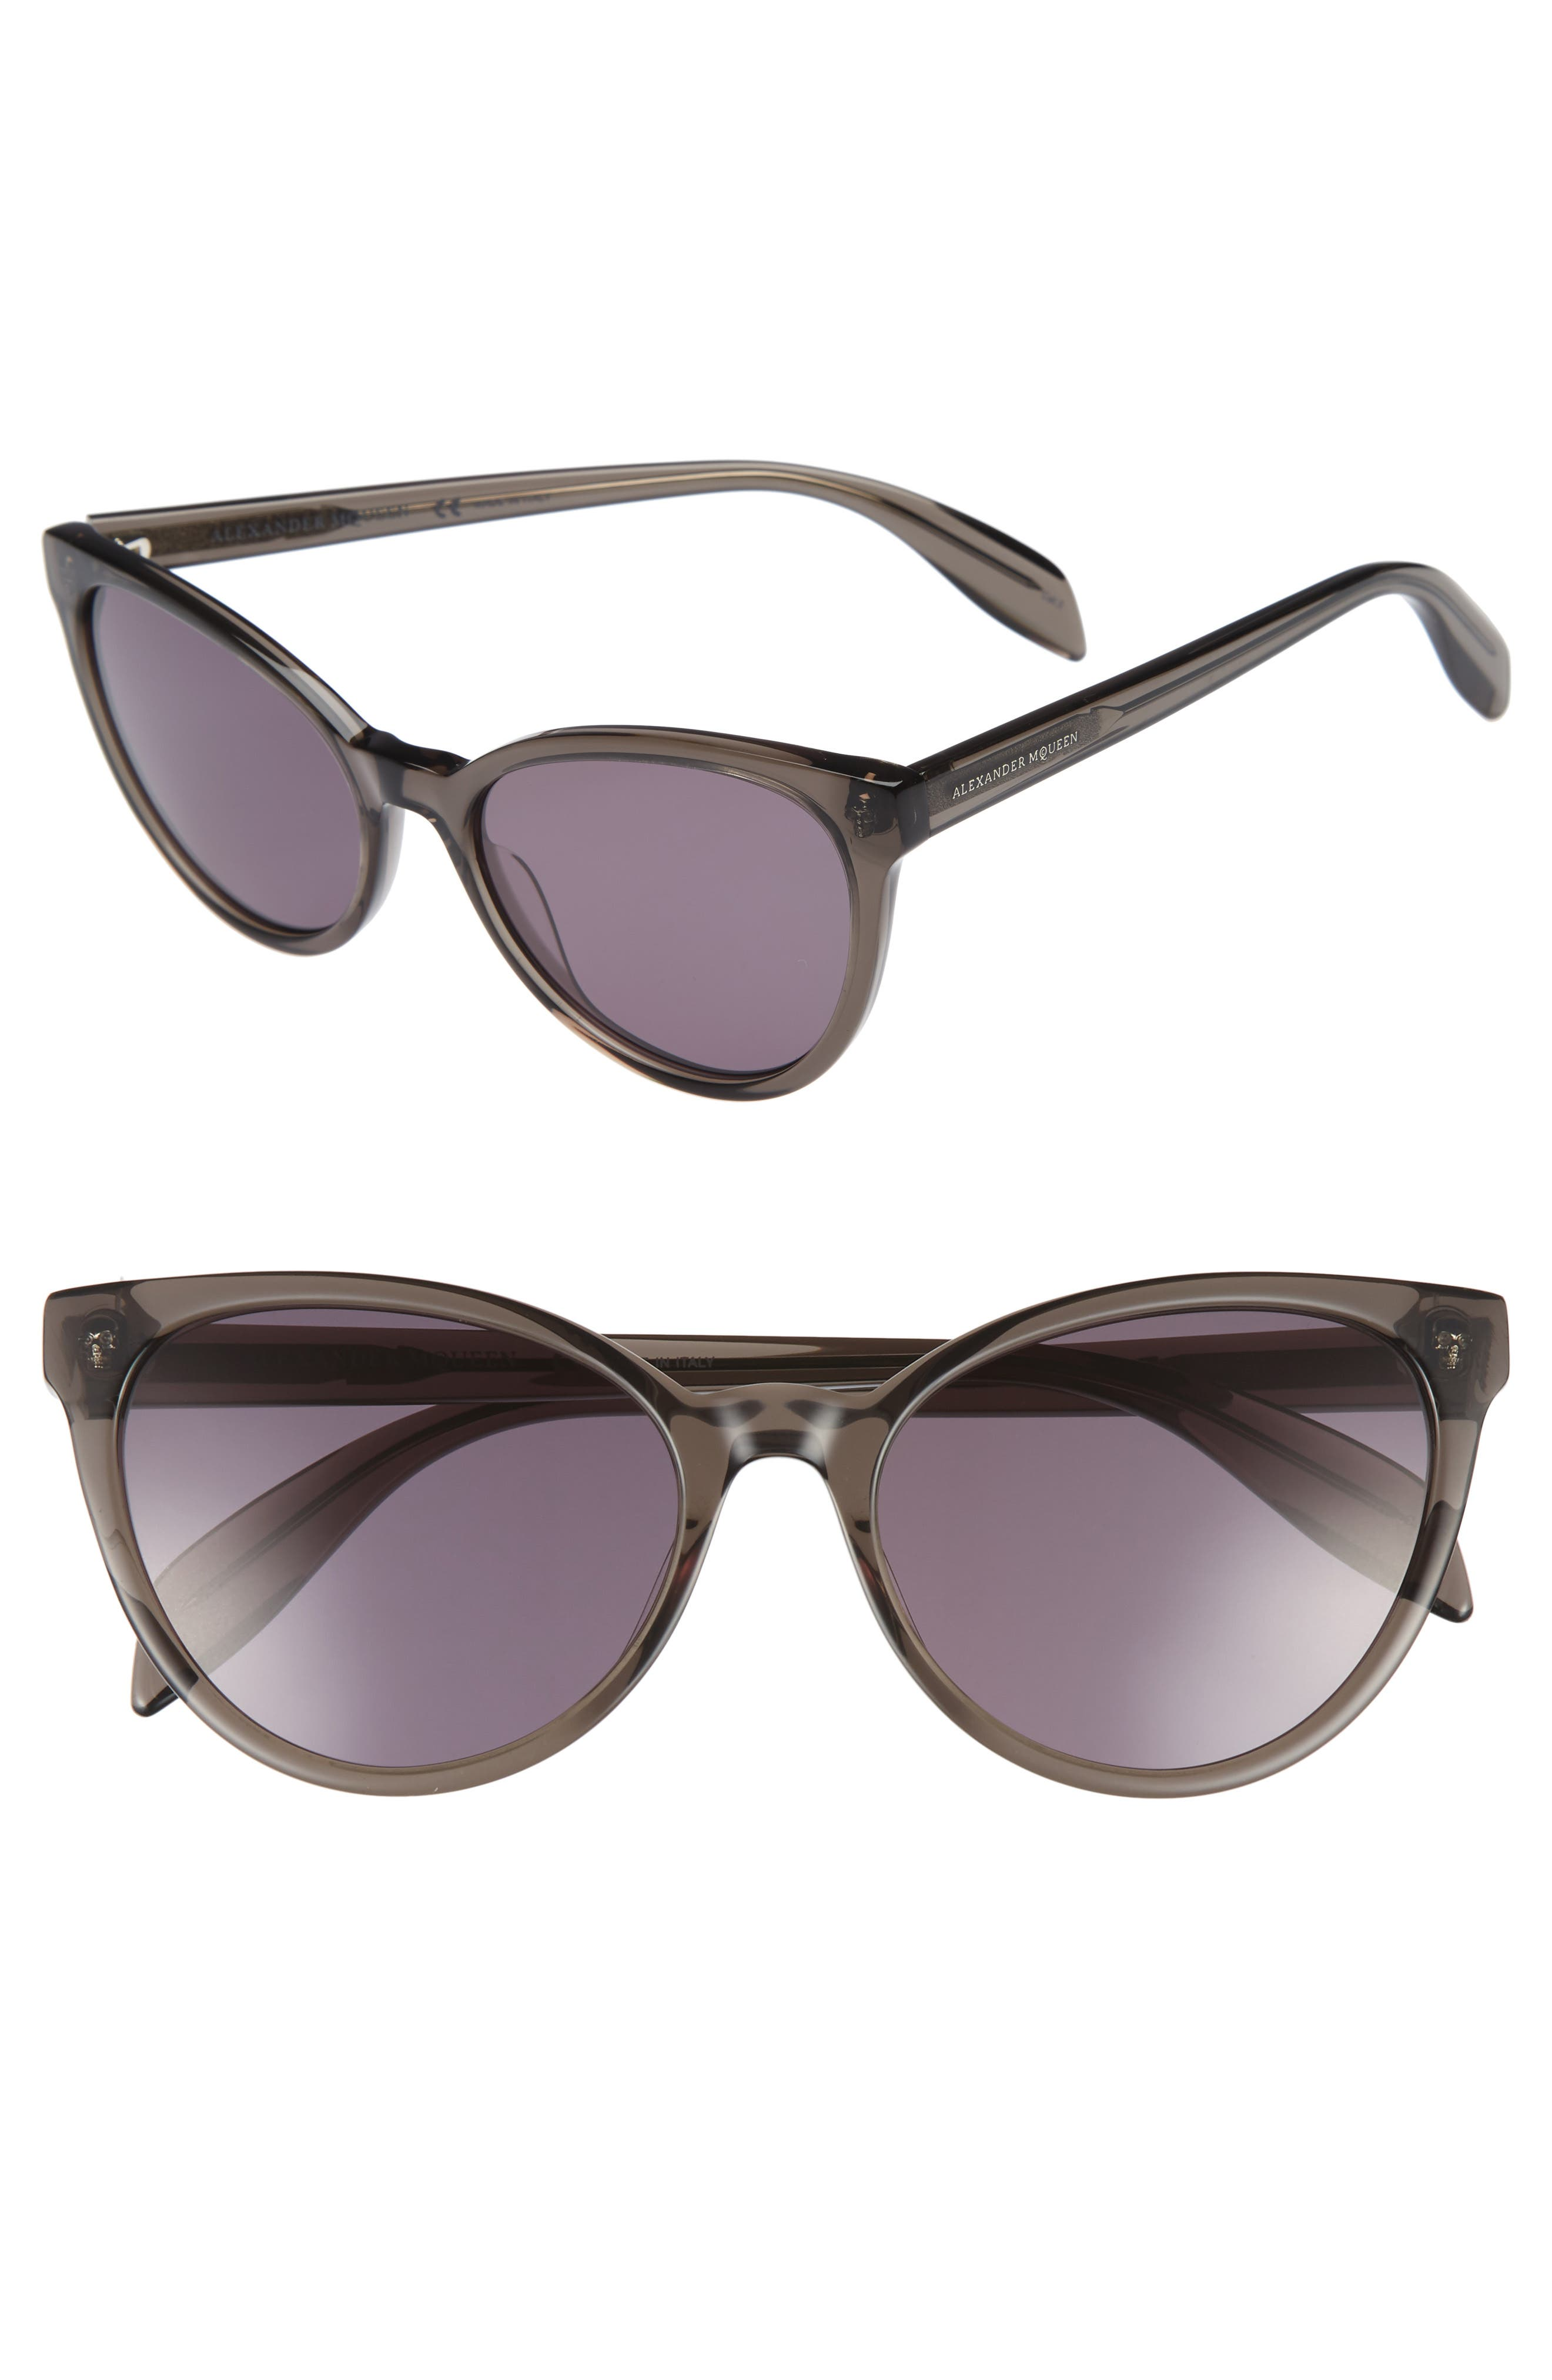 Alexander McQueen 55mm Cat Eye Sunglasses